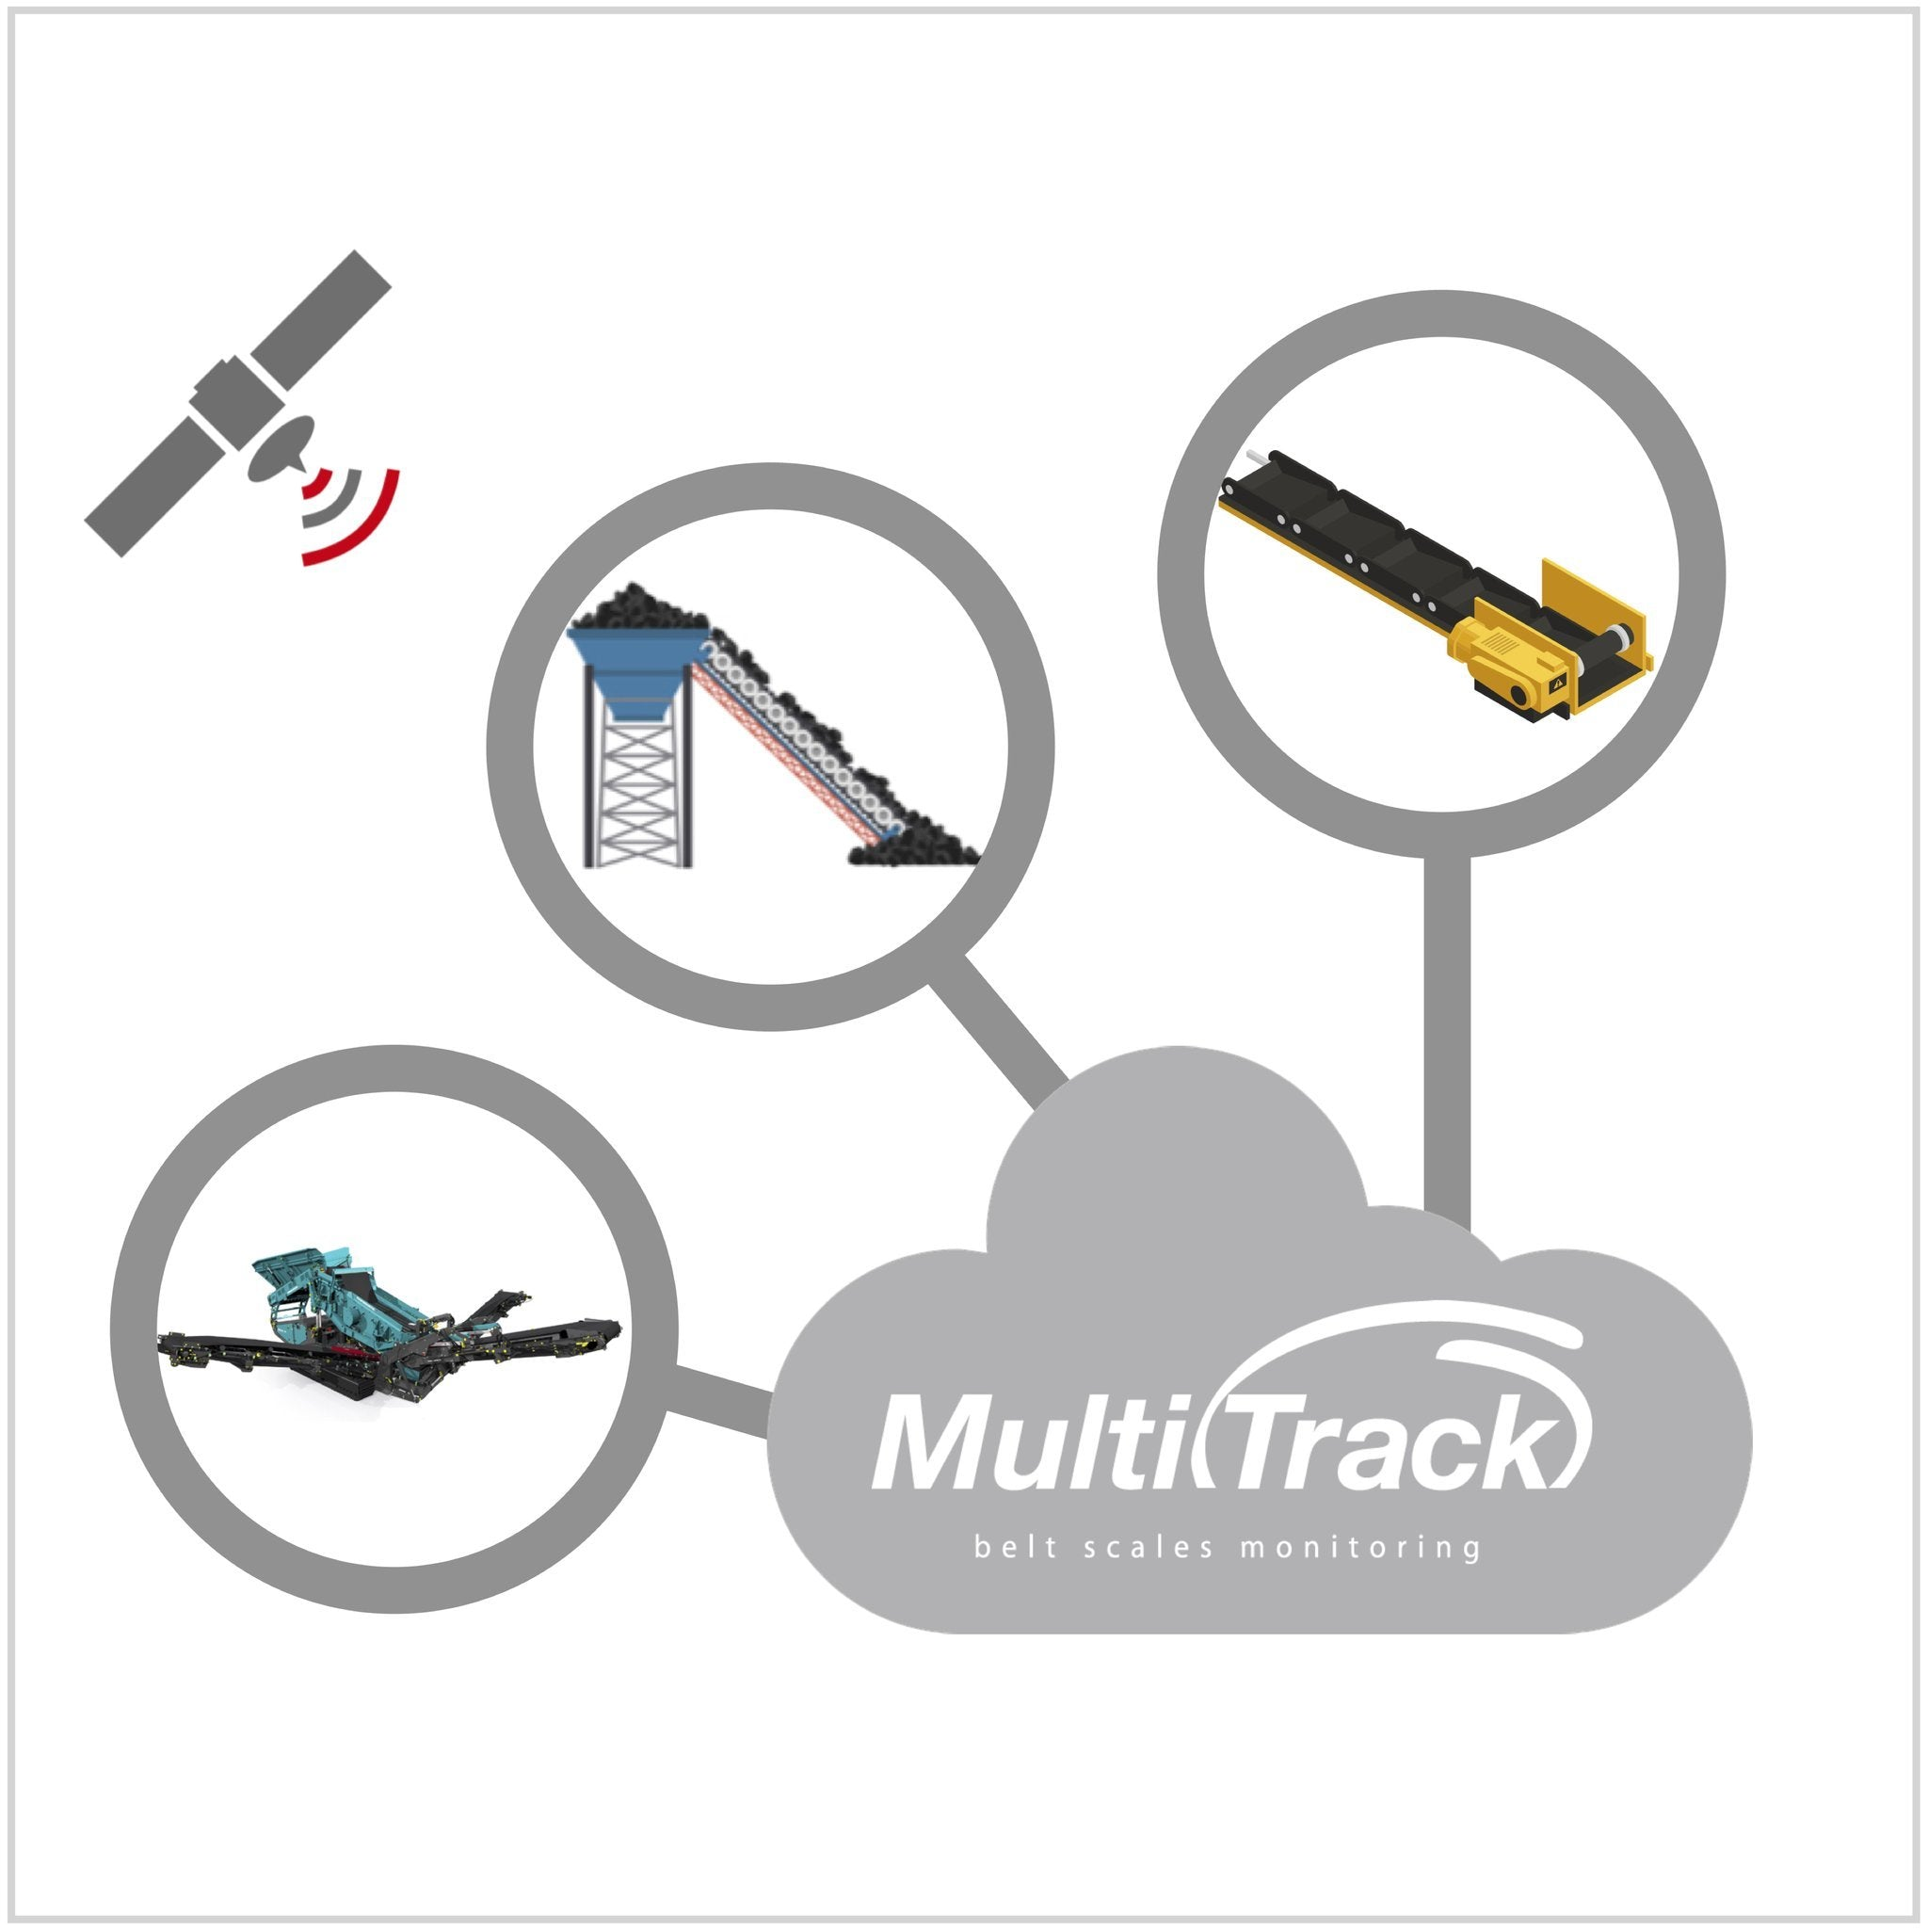 MULTITRACK DEPLOYS ITS LATEST SOFTWARE INCLUDING A STOPPAGES LOG